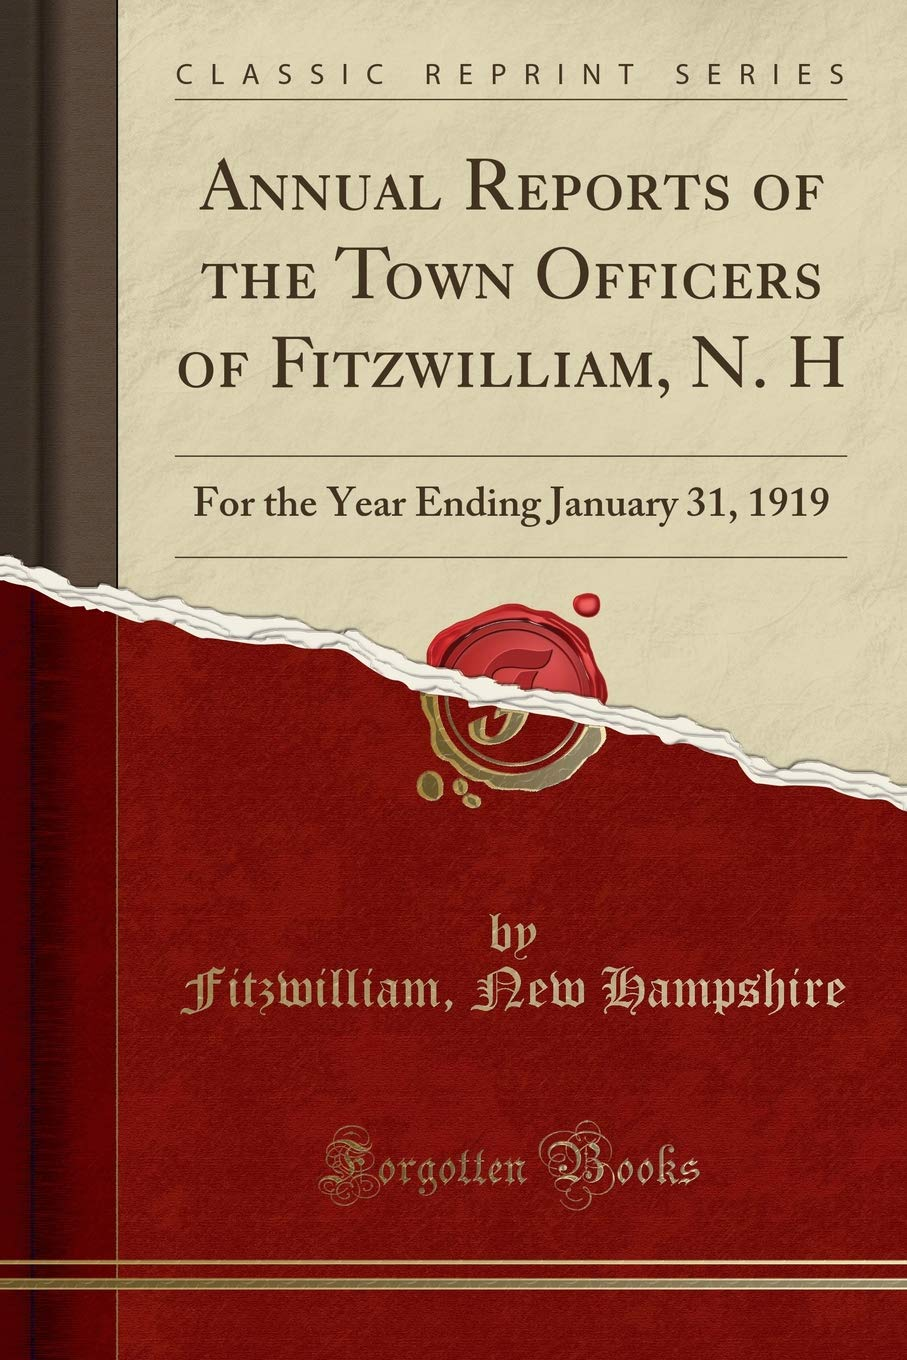 Read Online Annual Reports of the Town Officers of Fitzwilliam, N. H: For the Year Ending January 31, 1919 (Classic Reprint) PDF